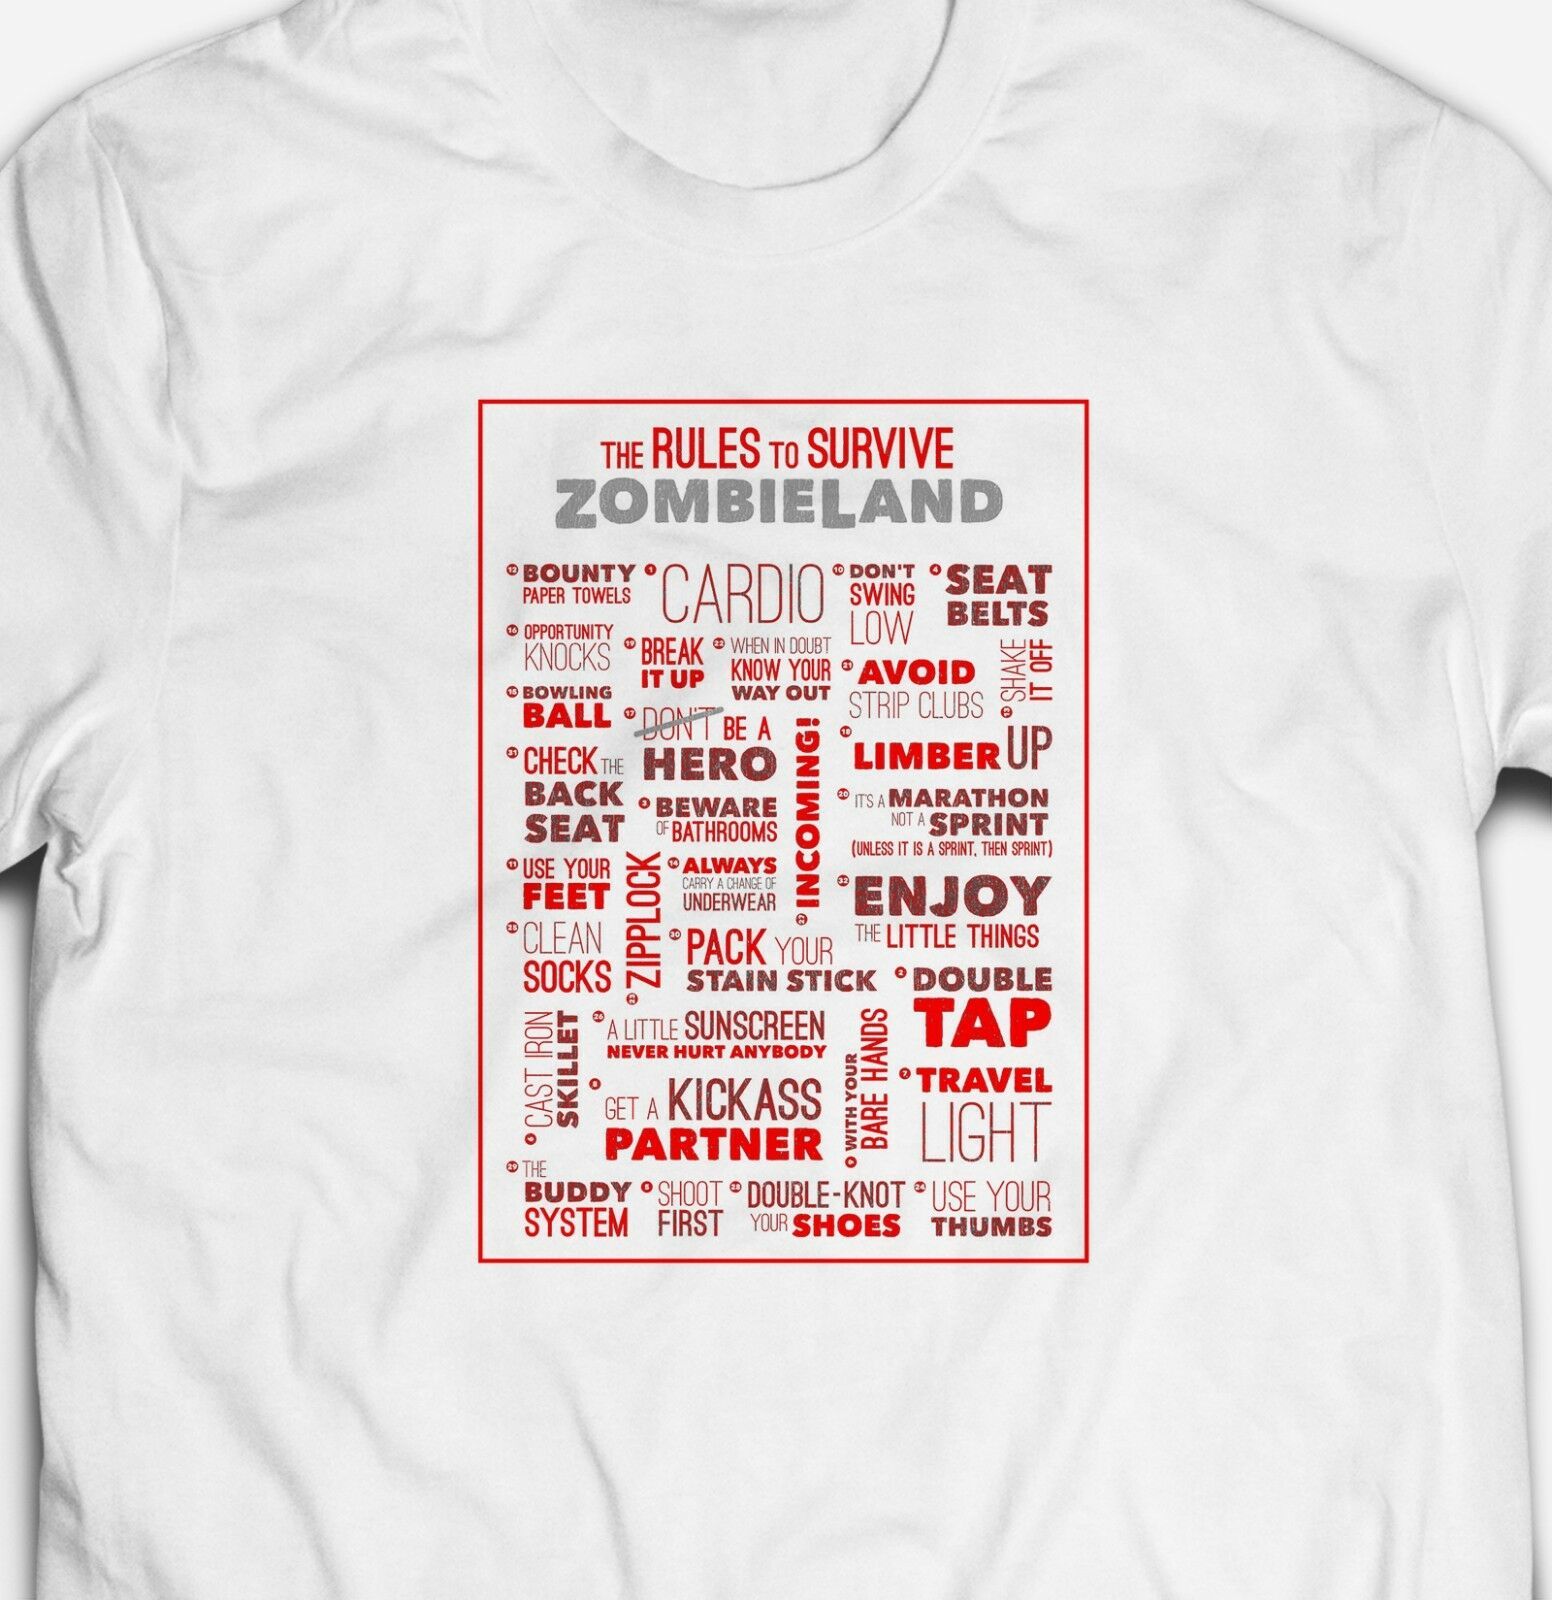 2019 Funny Funny Rules To Survive Zombieland Movie Mens-Fit 100%Cotton T-Shirt Tee Shirt Unisex Tees image